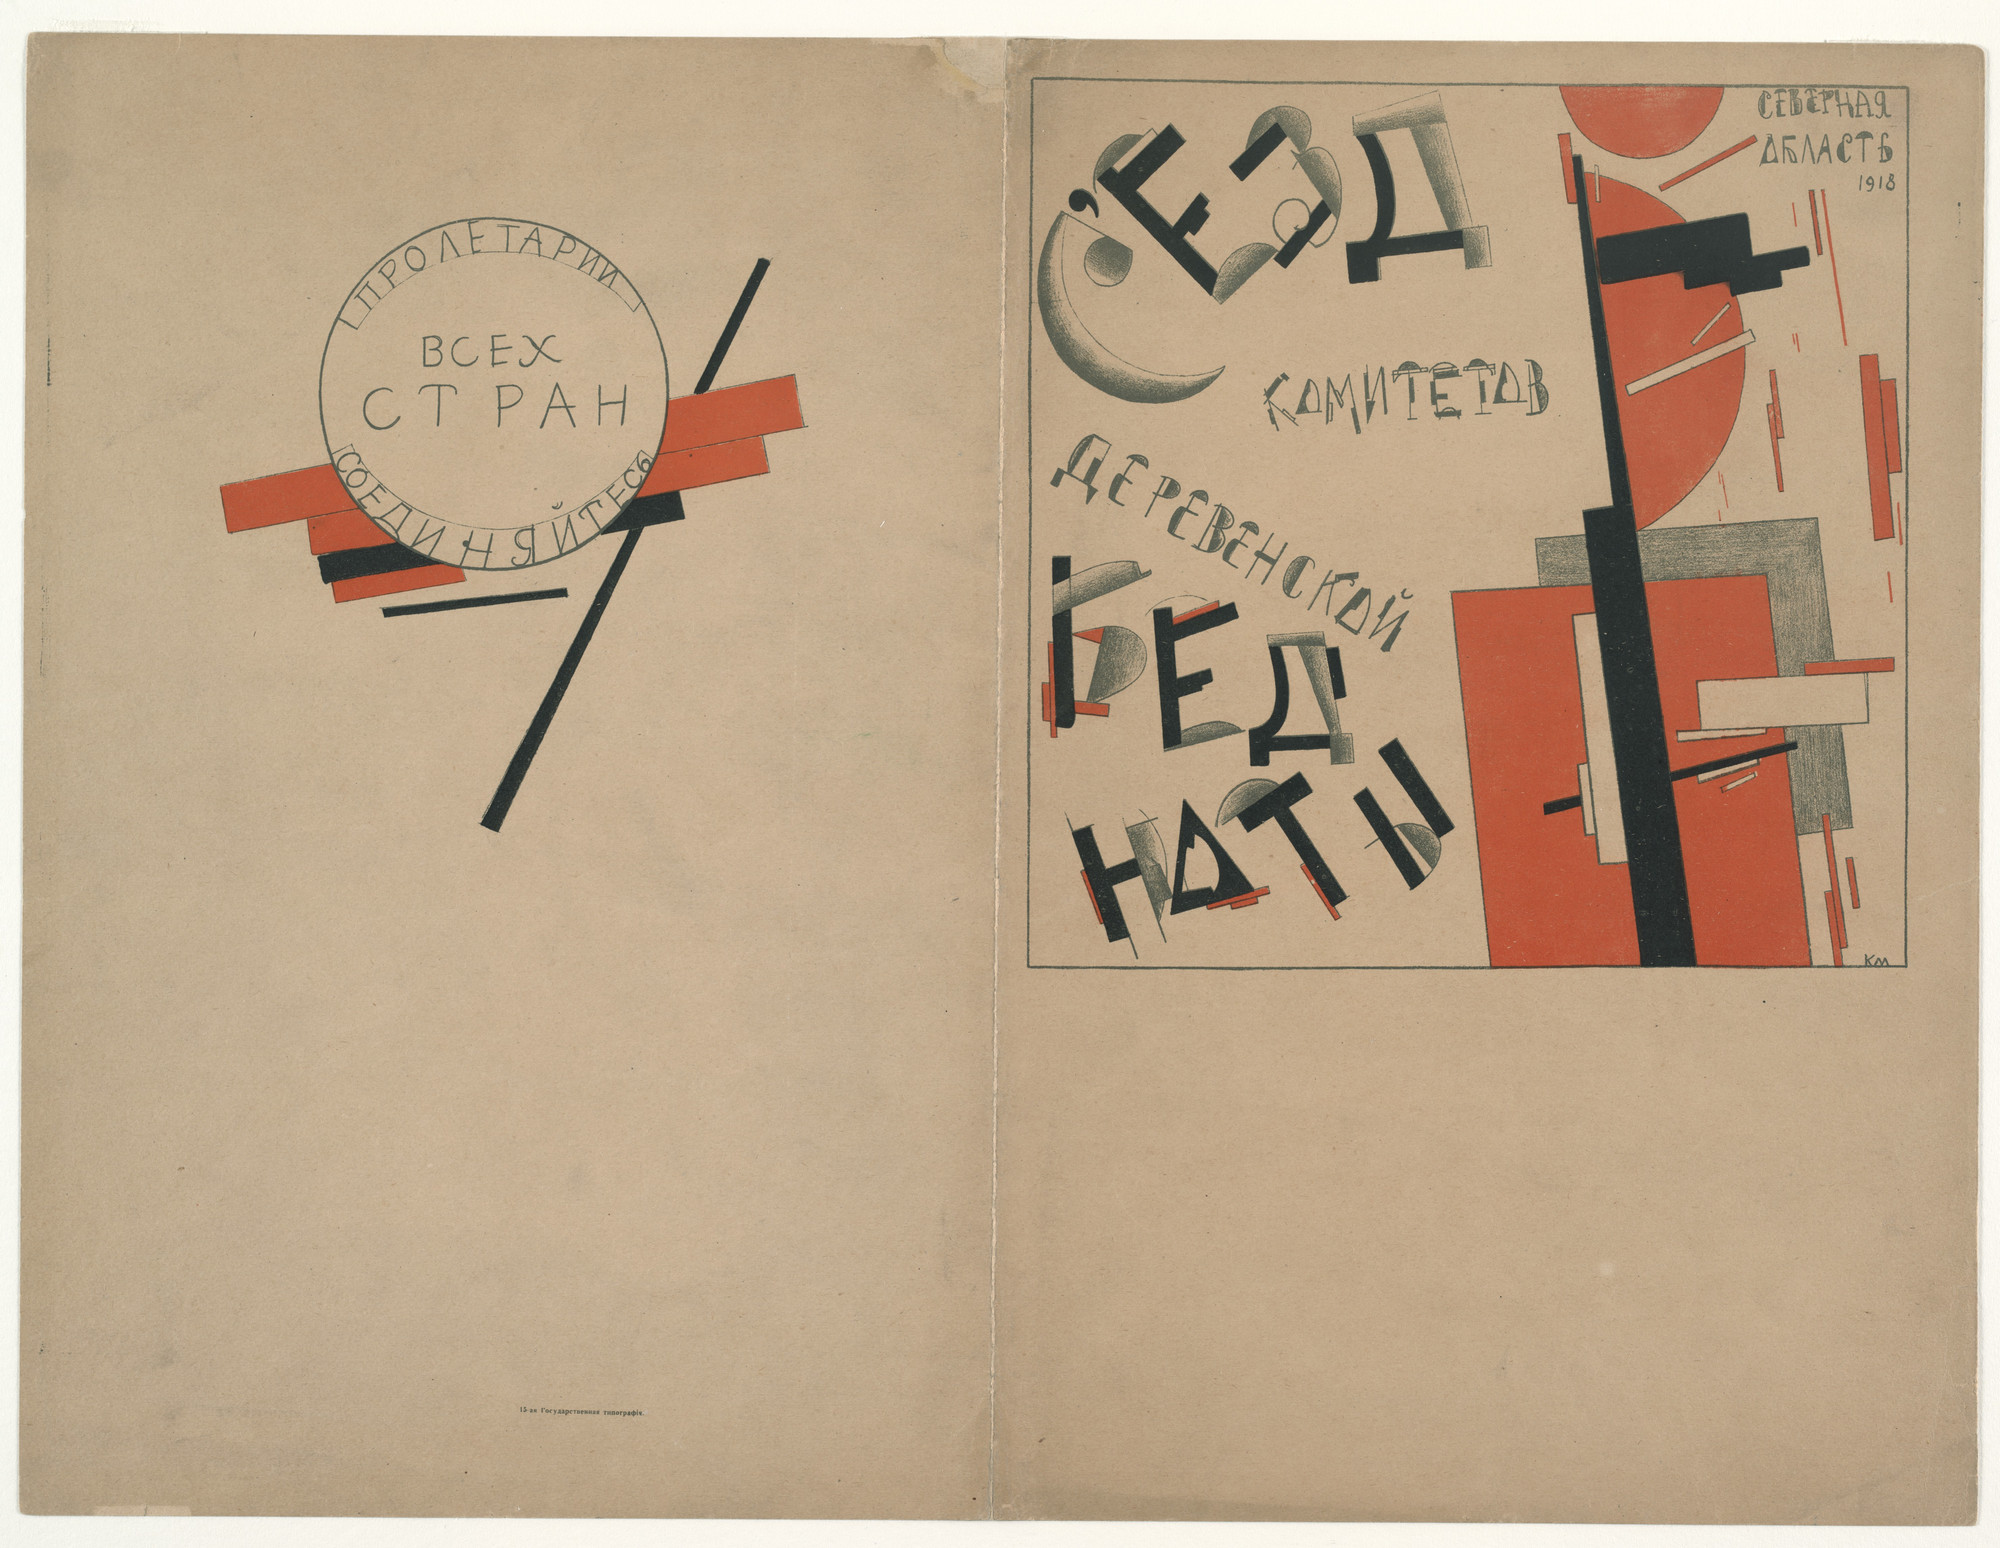 Kazimir Malevich. Wraparound cover for the program S'ezd komitetov derevenskoi bednoty (Congress of Committees of Peasant Poverty). 1918